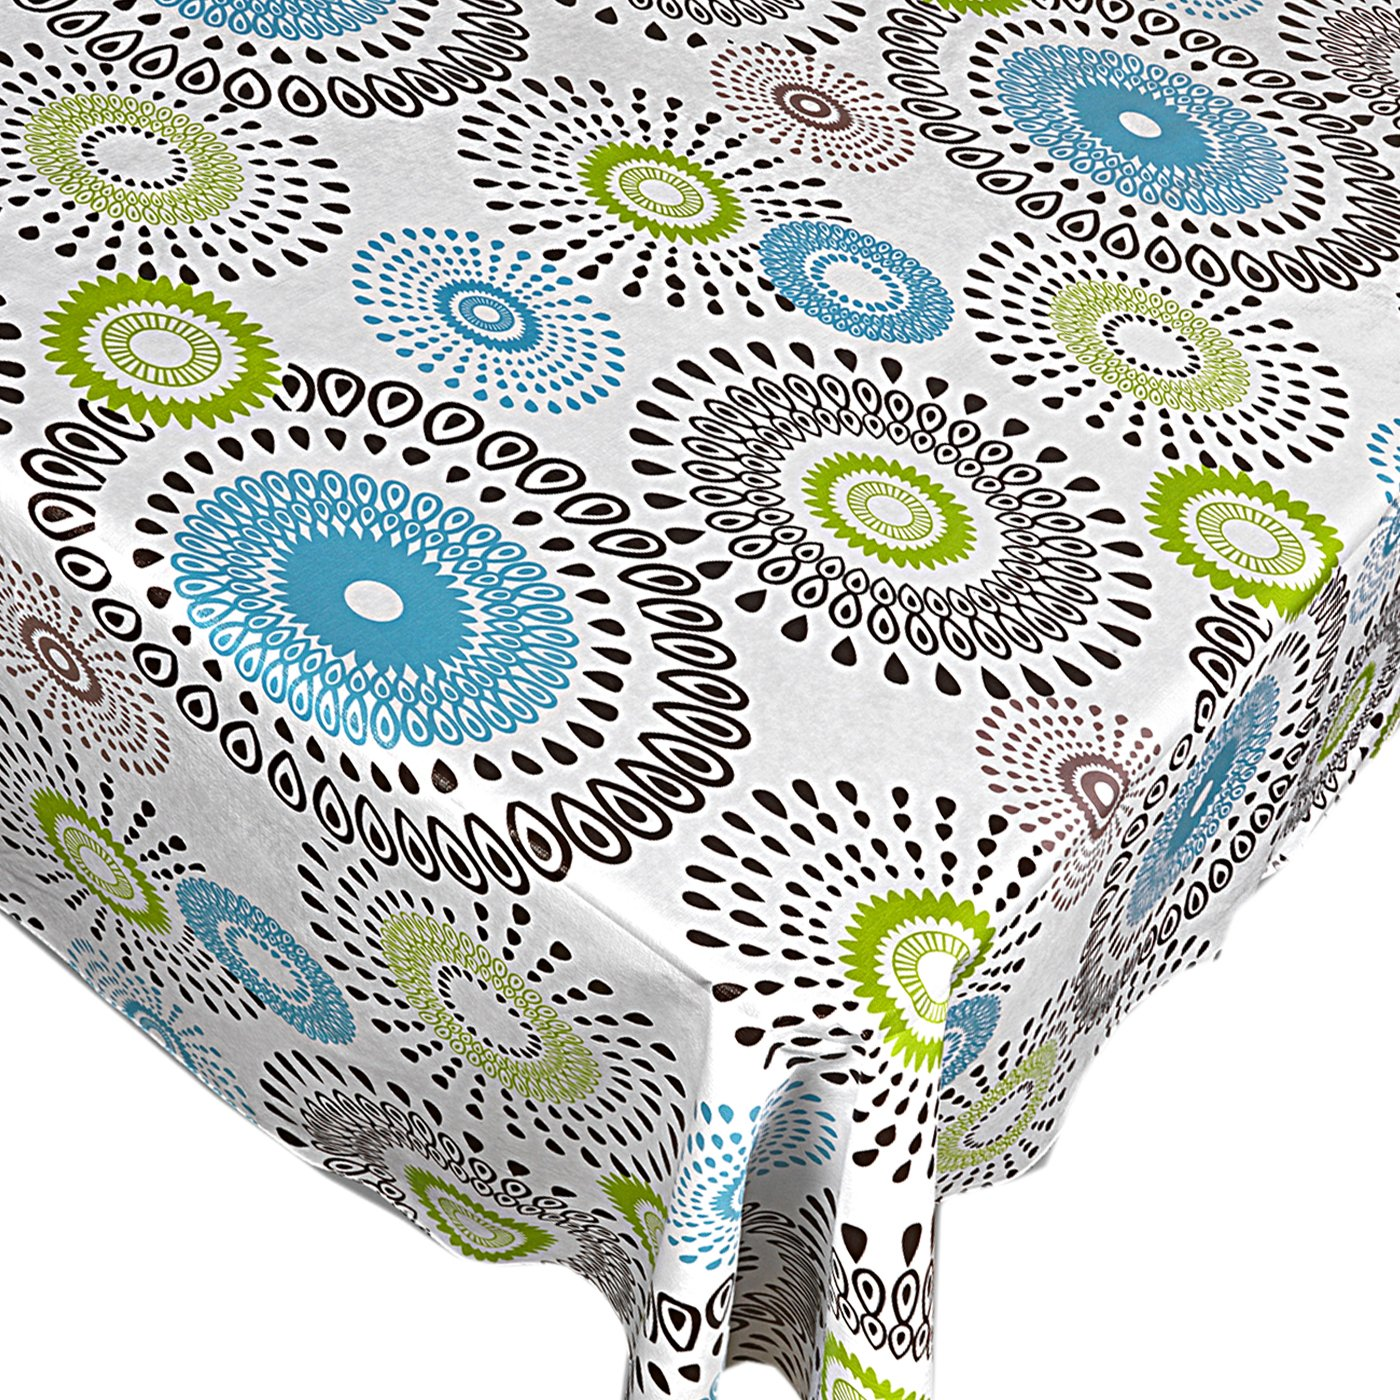 Whimsy Circle Contemporary Print Indoor/Outdoor Vinyl Flannel Backed Tablecloth - 52 x 90 Oblong